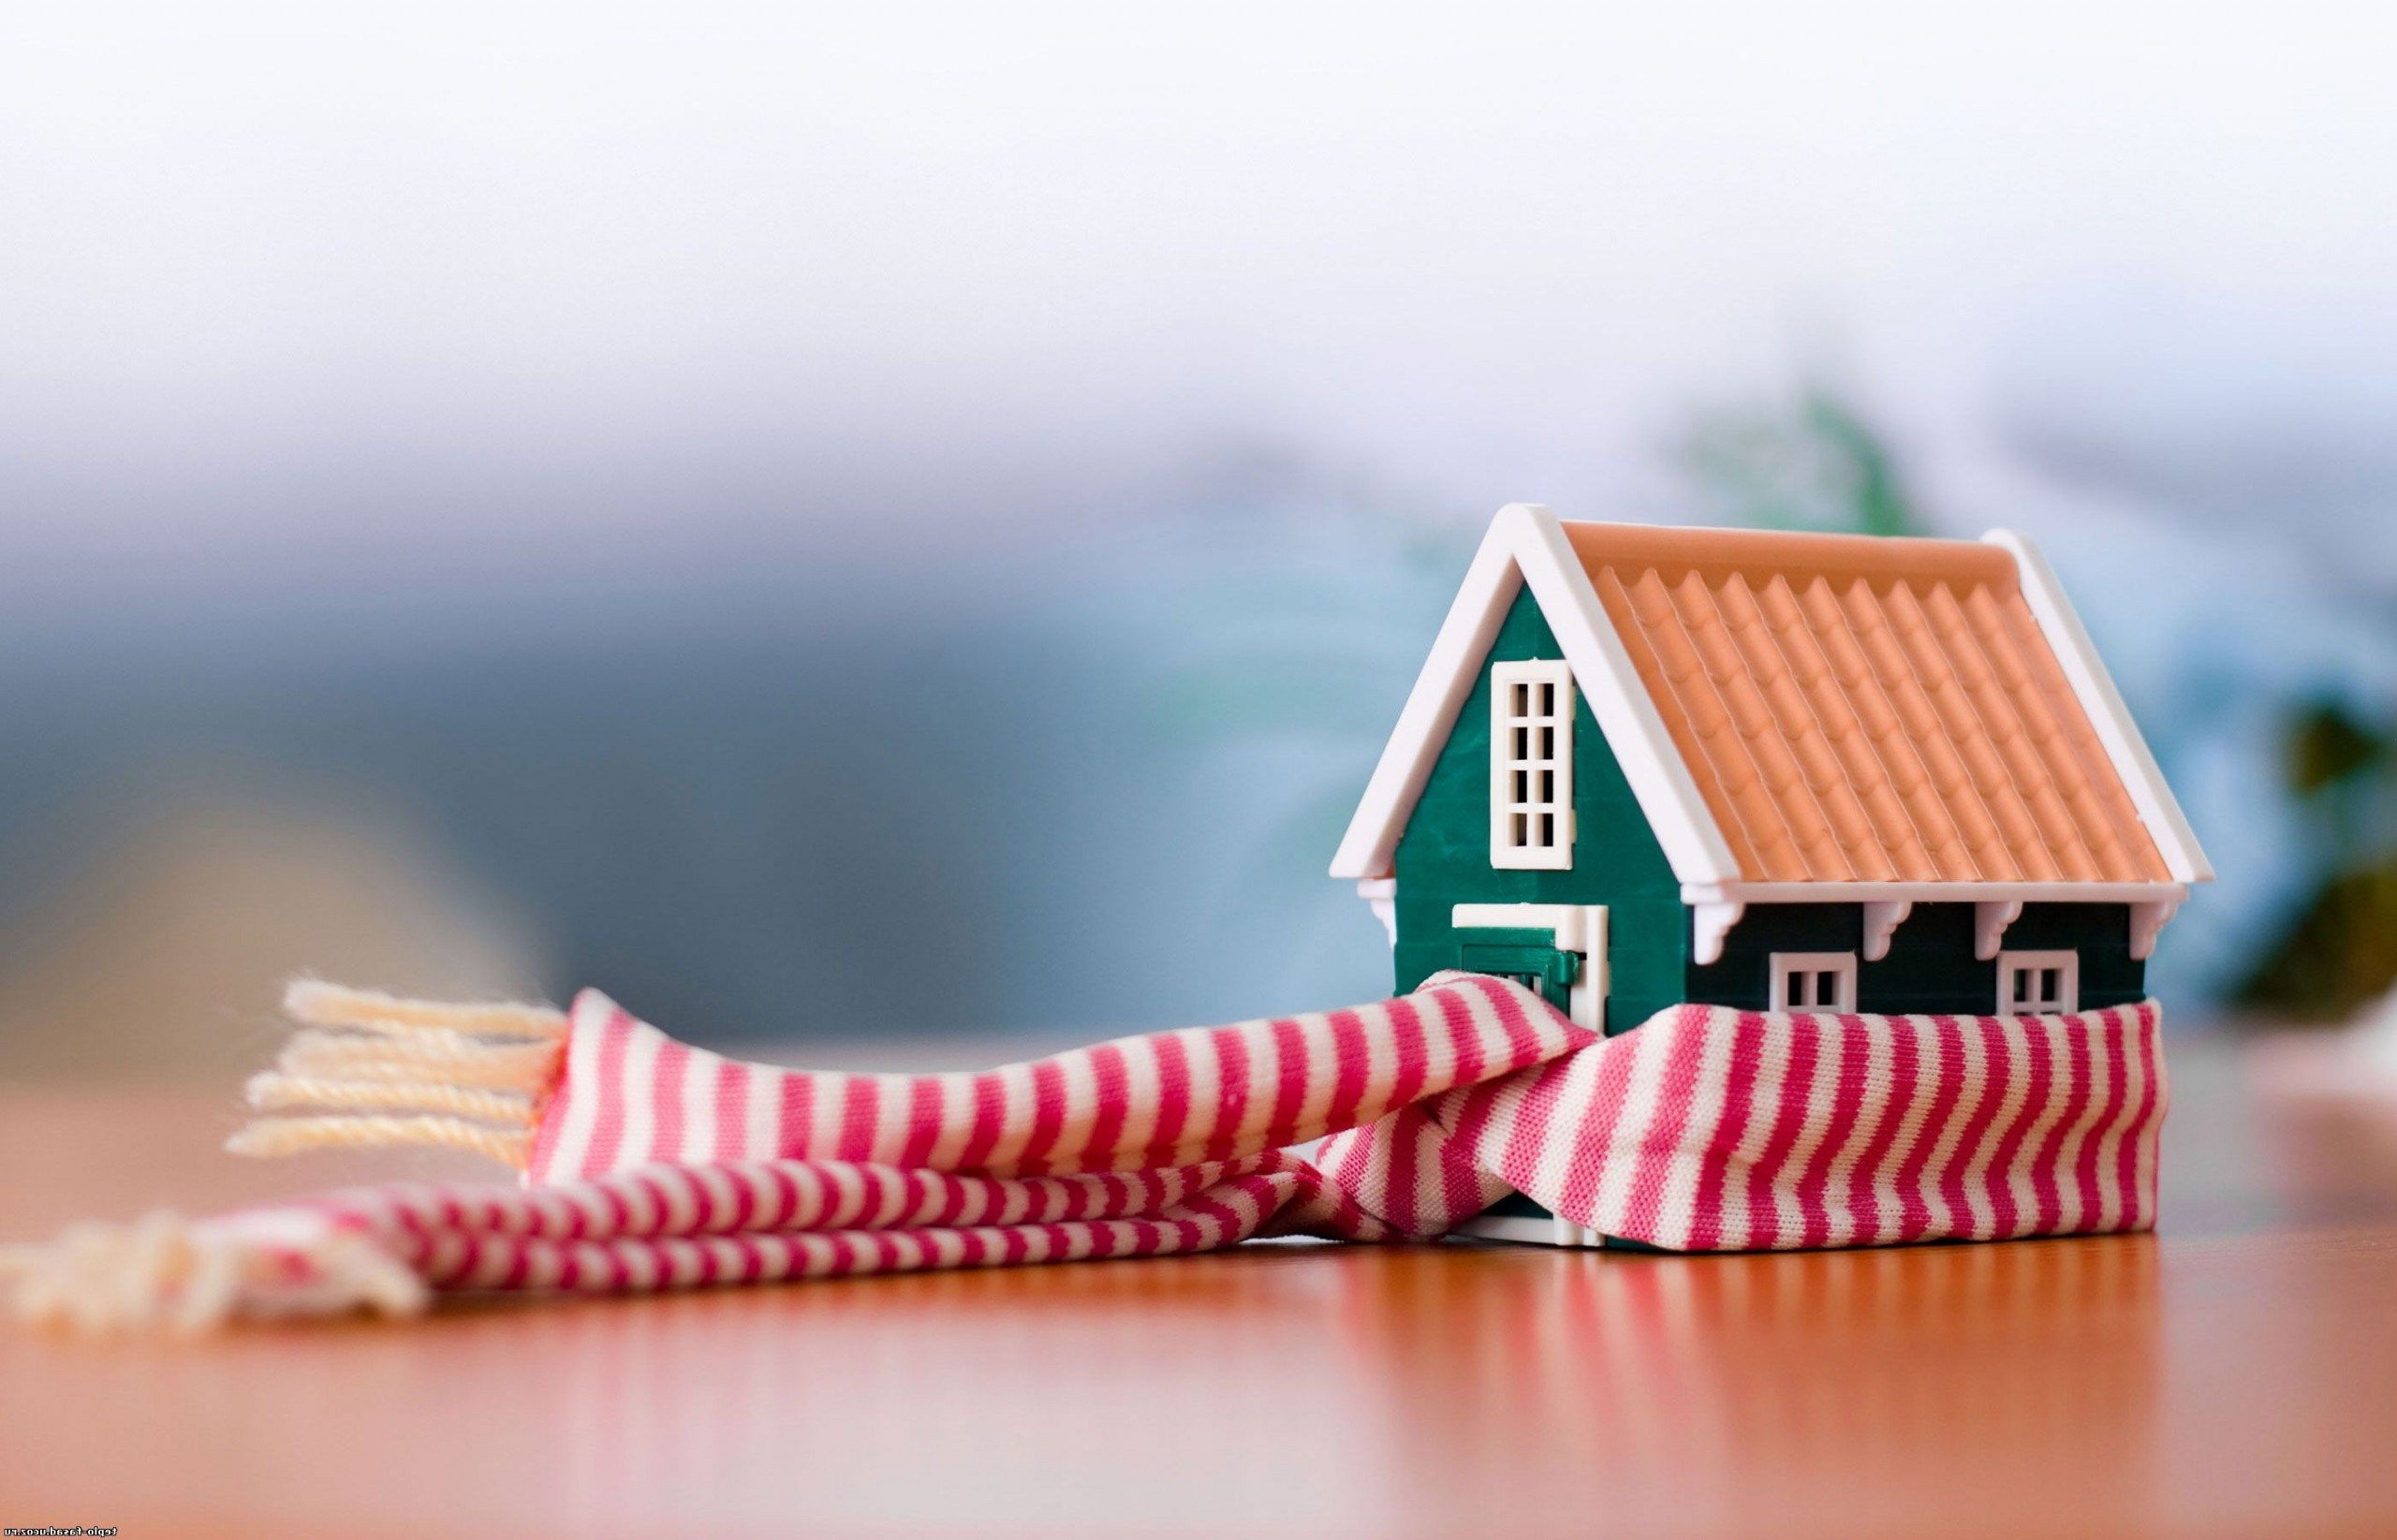 Maintaining Your Home: Winter Edition